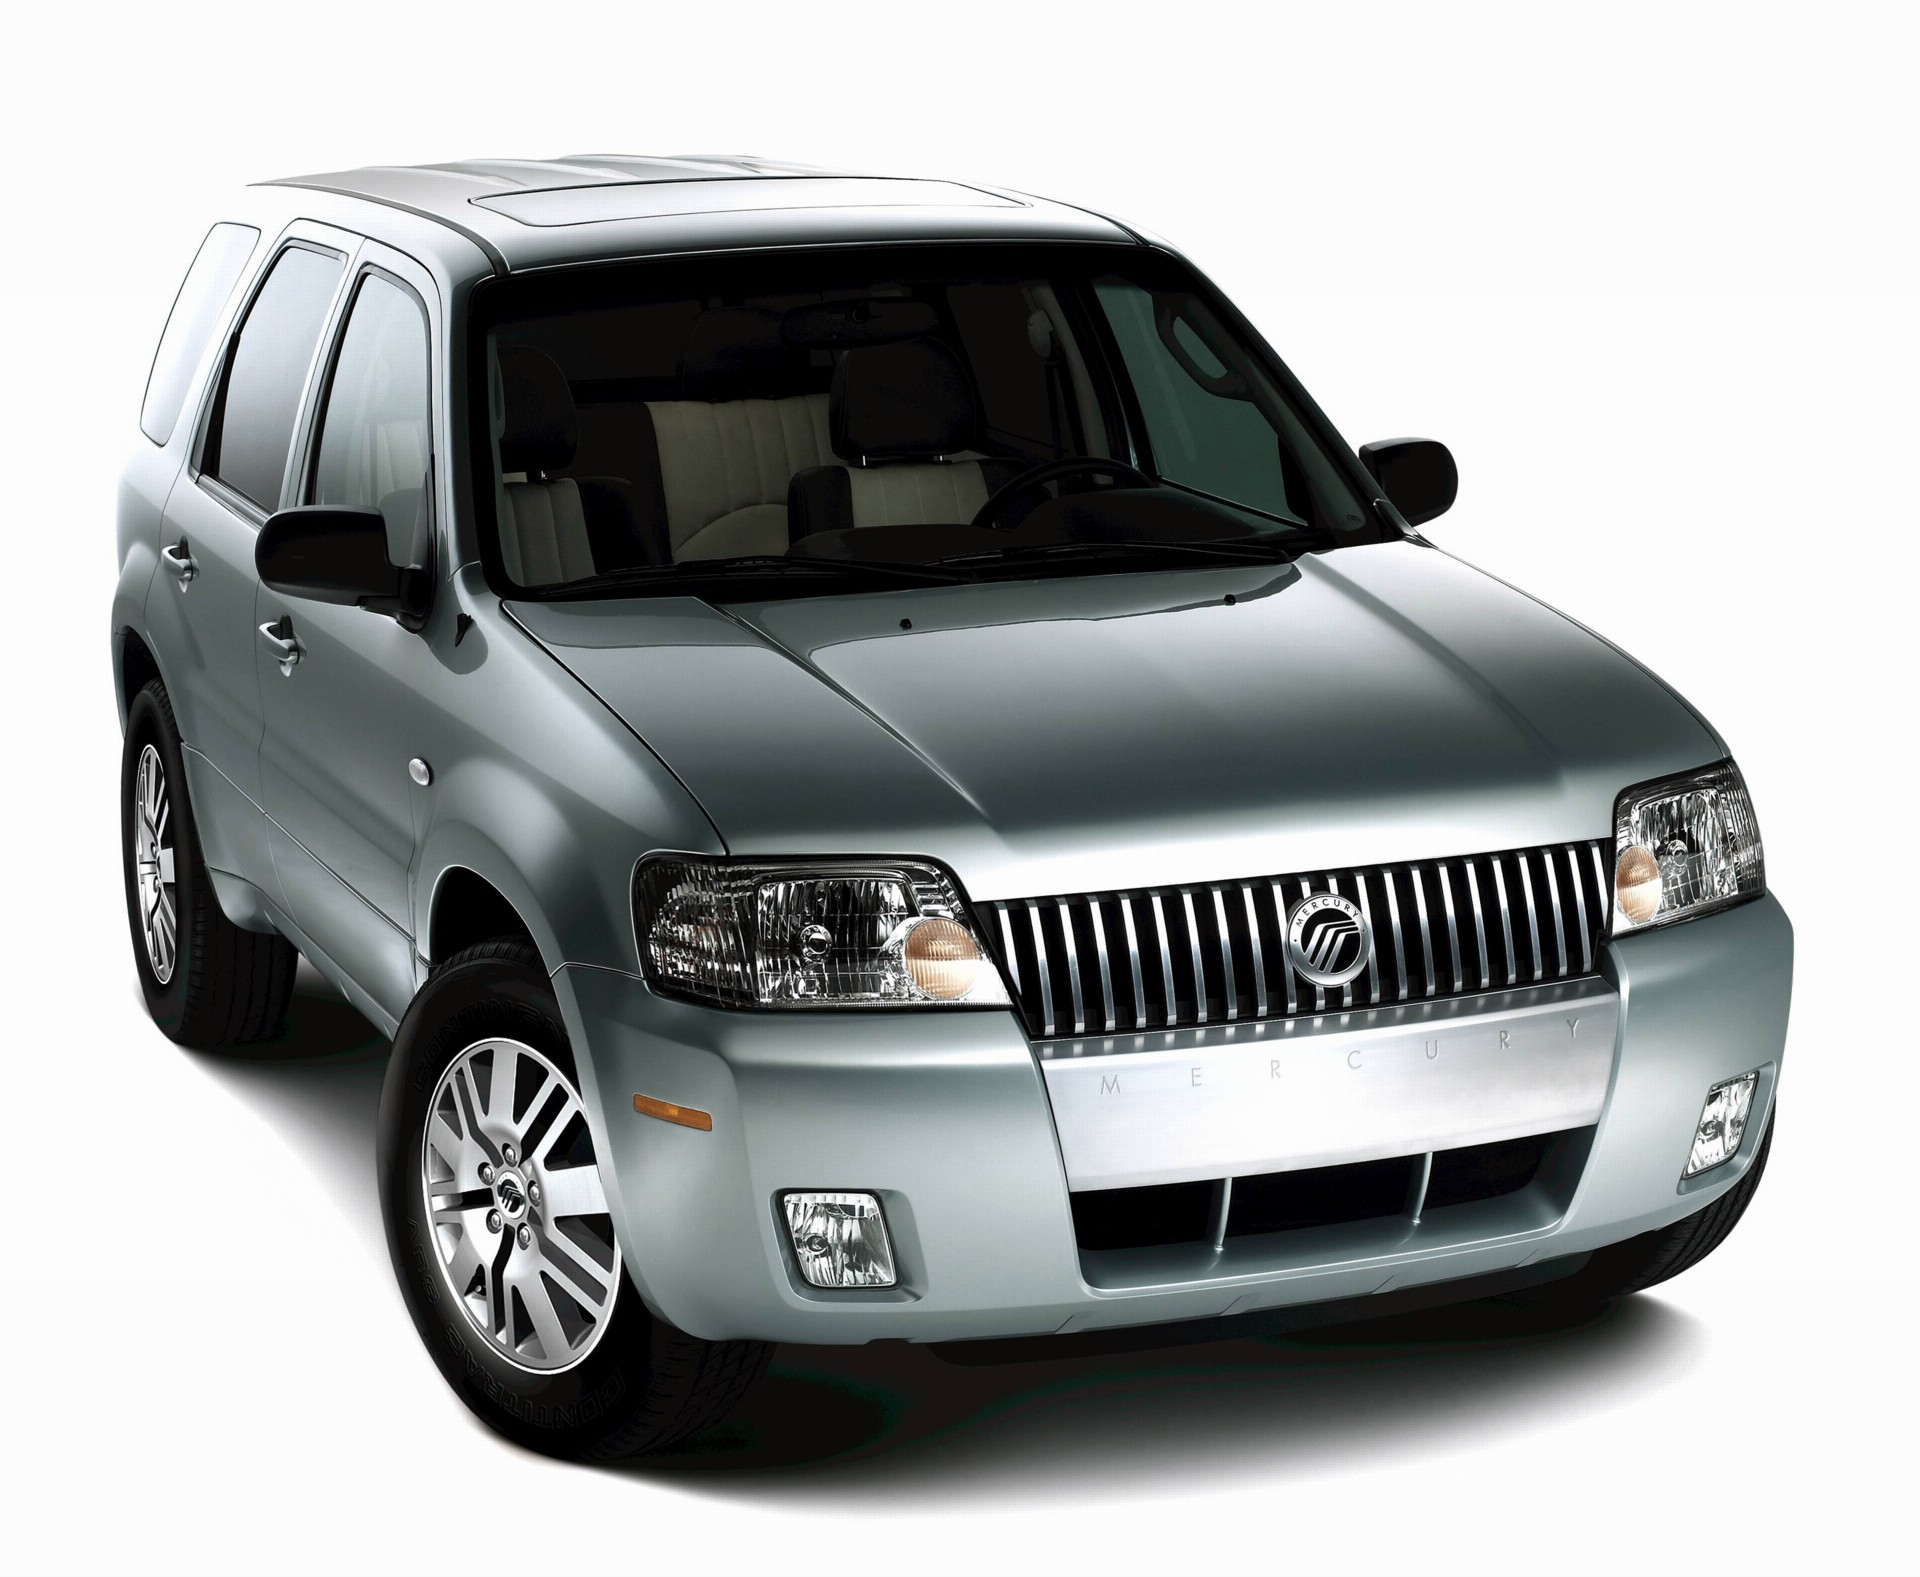 2007 mercury mariner hybrid history pictures value auction sales research and news. Black Bedroom Furniture Sets. Home Design Ideas